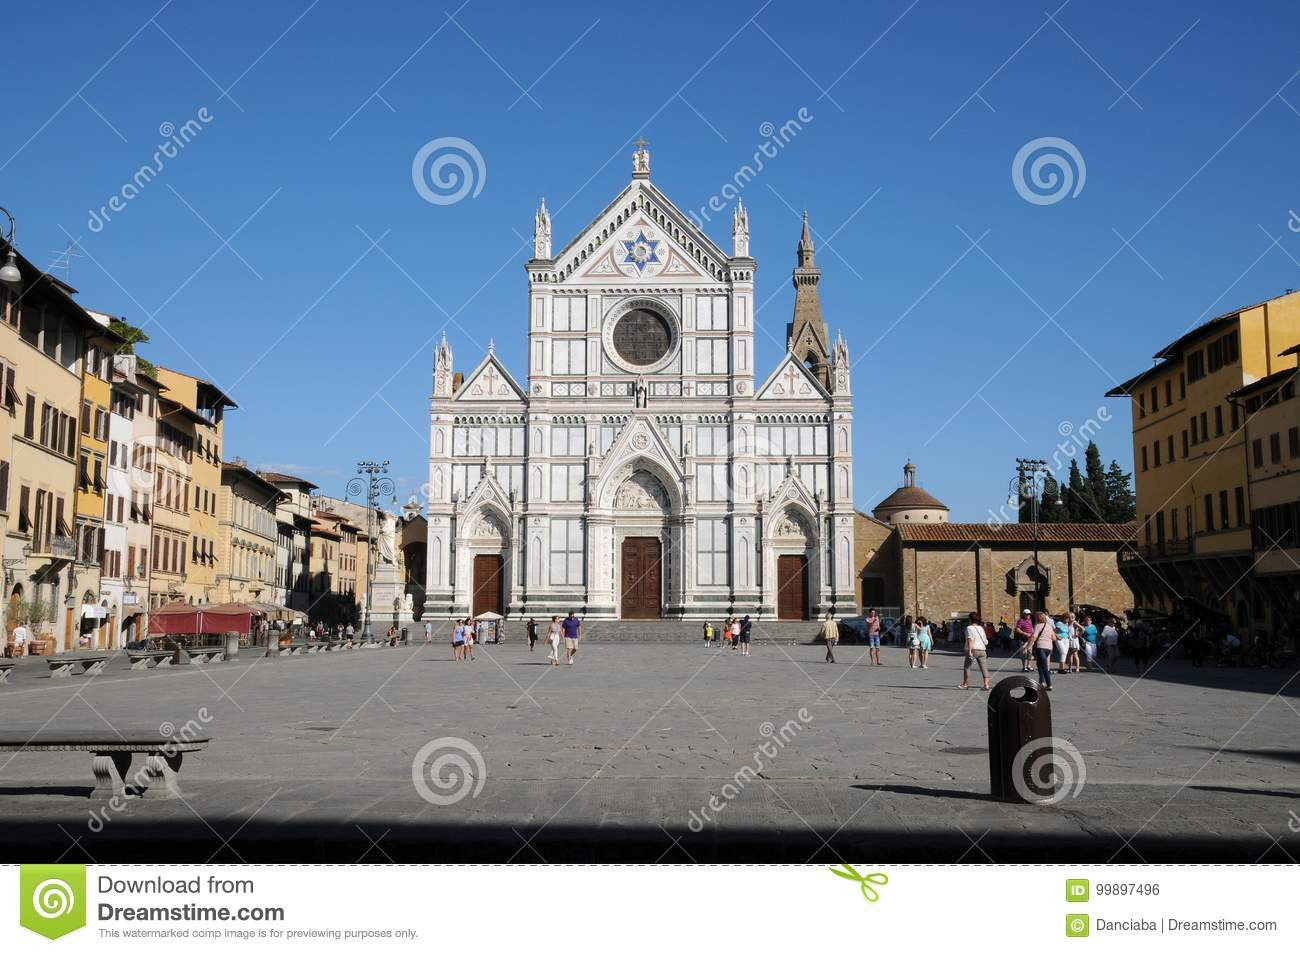 The Basilica of Santa Croce Basilica of the Holy Cross on square of the same name in Florence, Tuscany, Italy. F